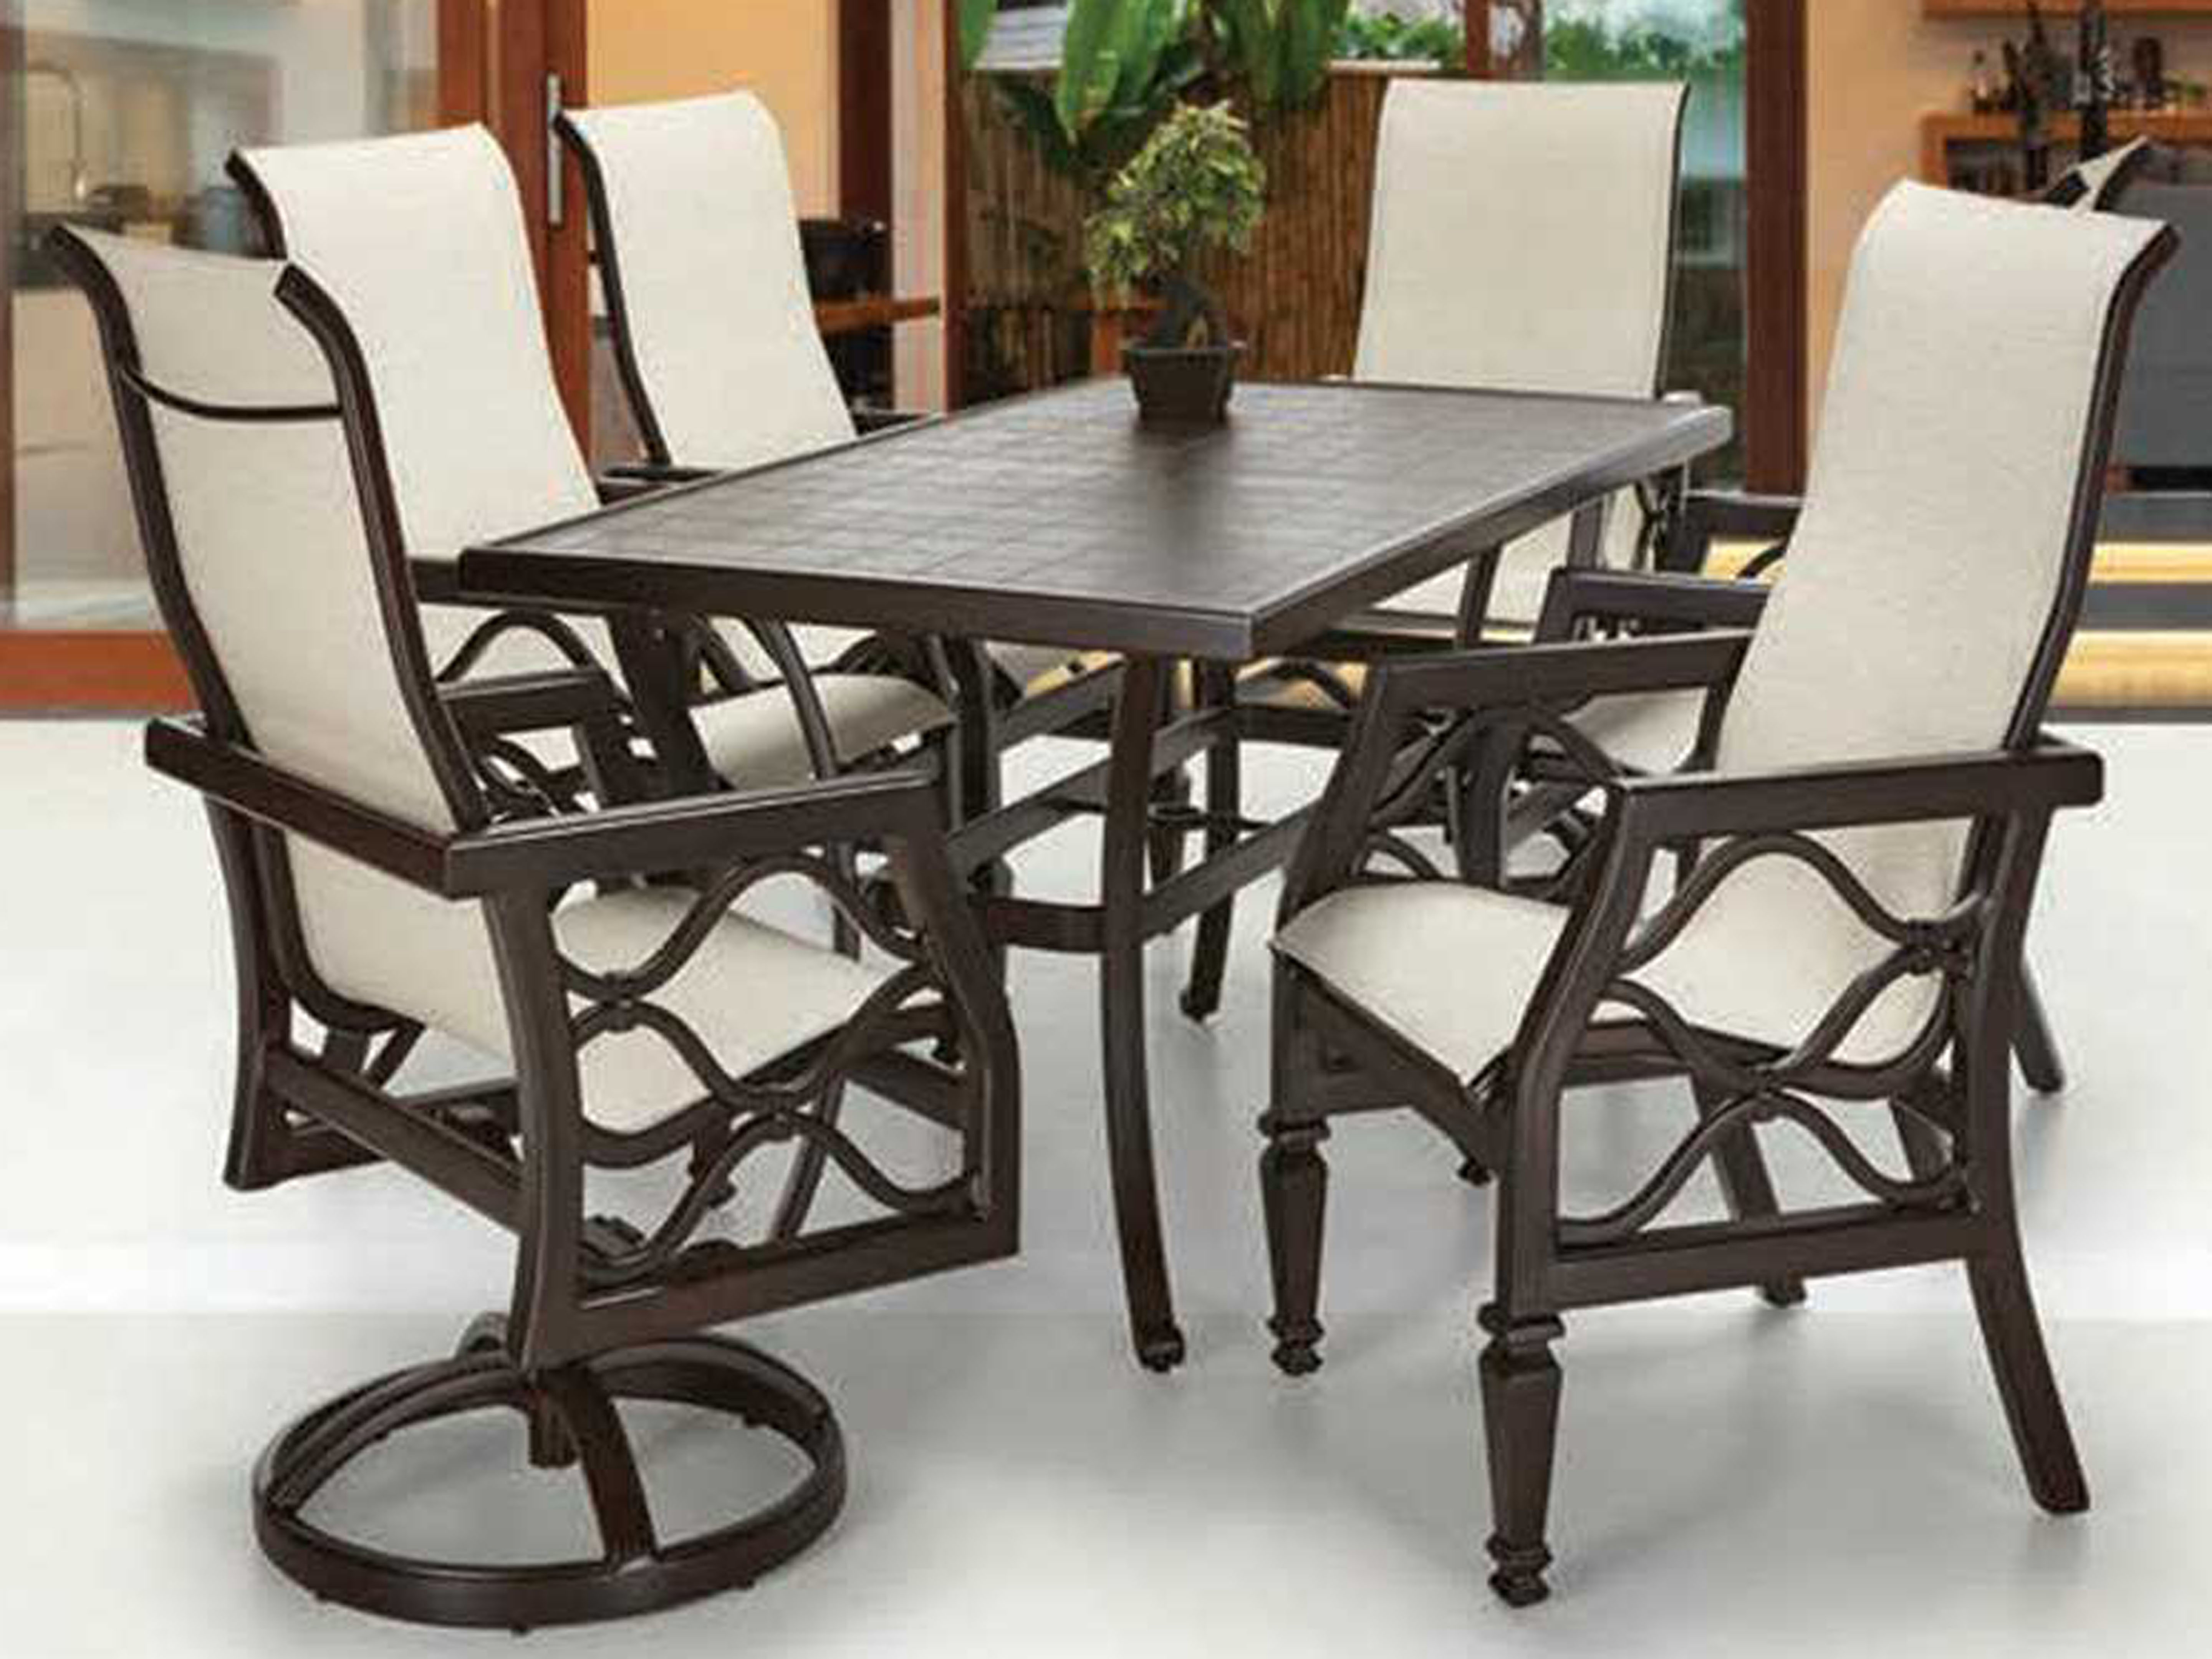 Castelle Vintage Cast Aluminum 86 X 44 Rectangular Dining Table Ready To Asse